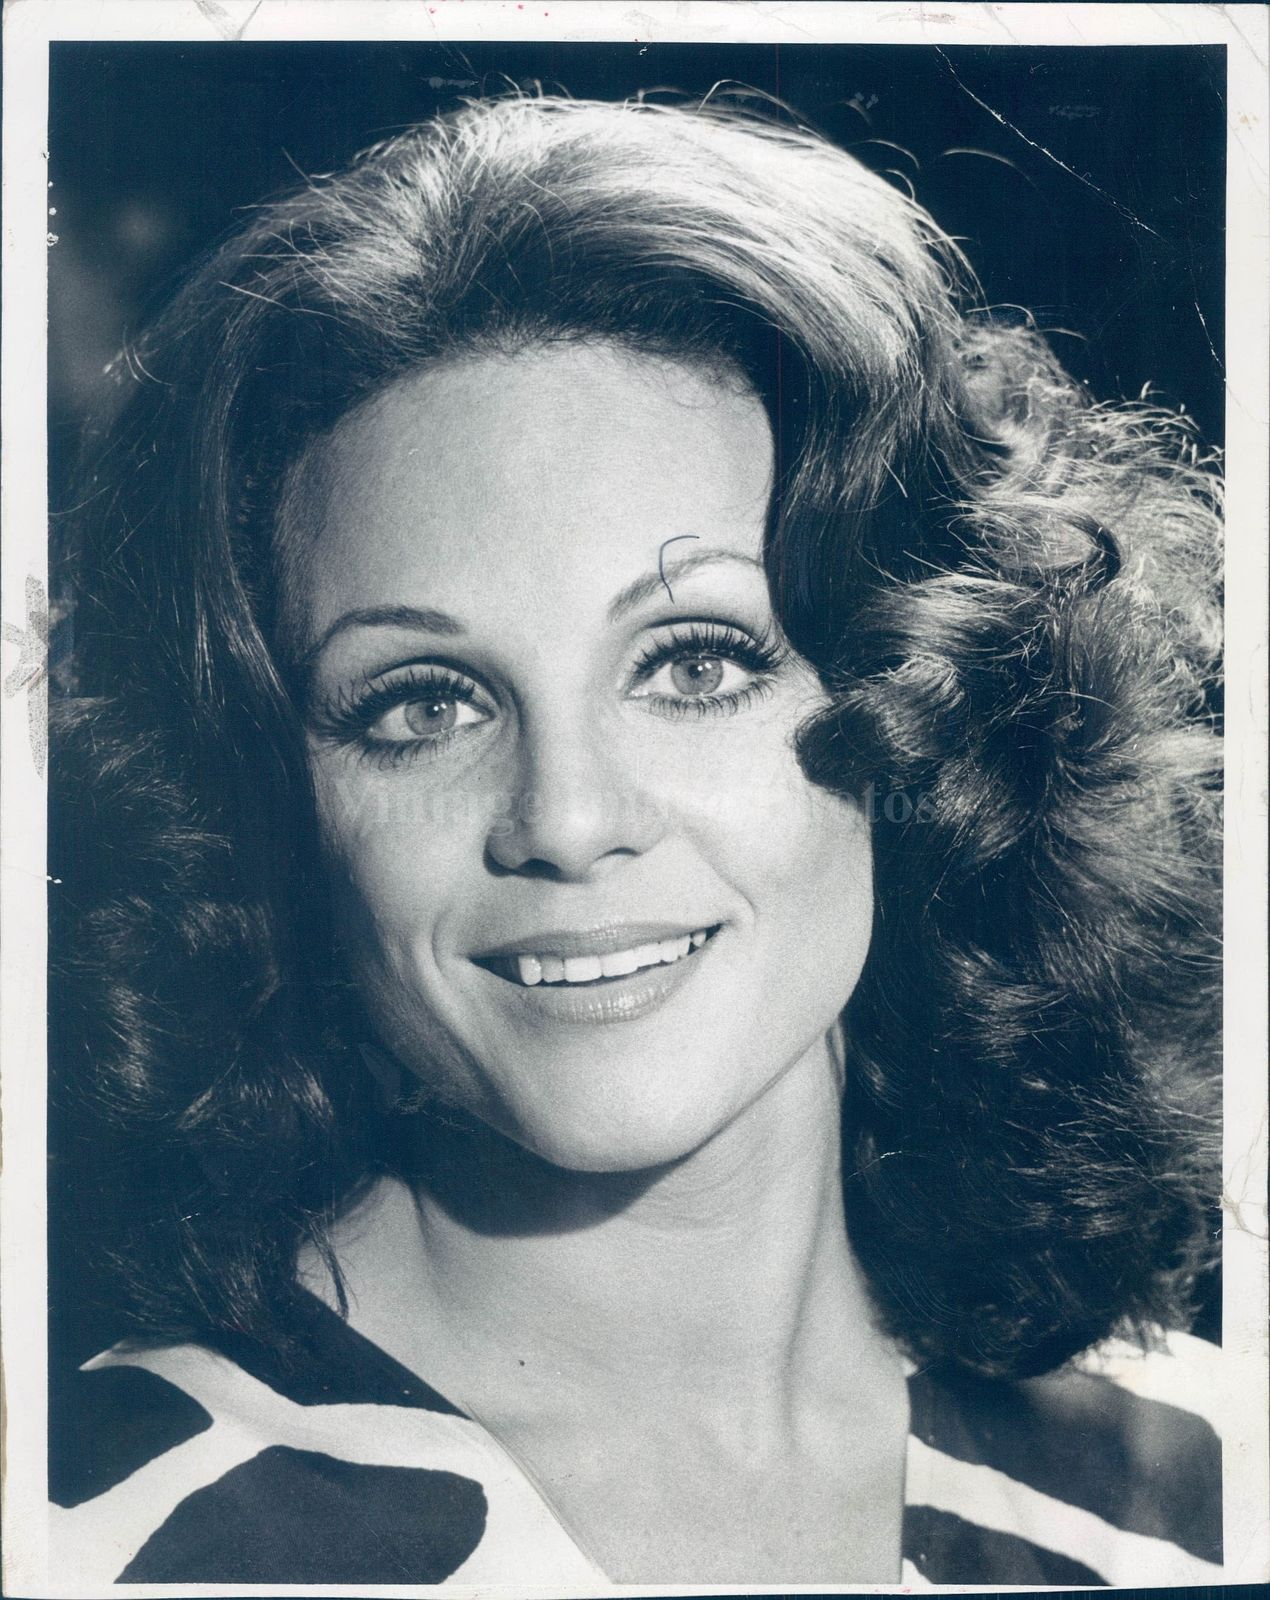 Valerie Harper born August 22, 1939 (age 79)